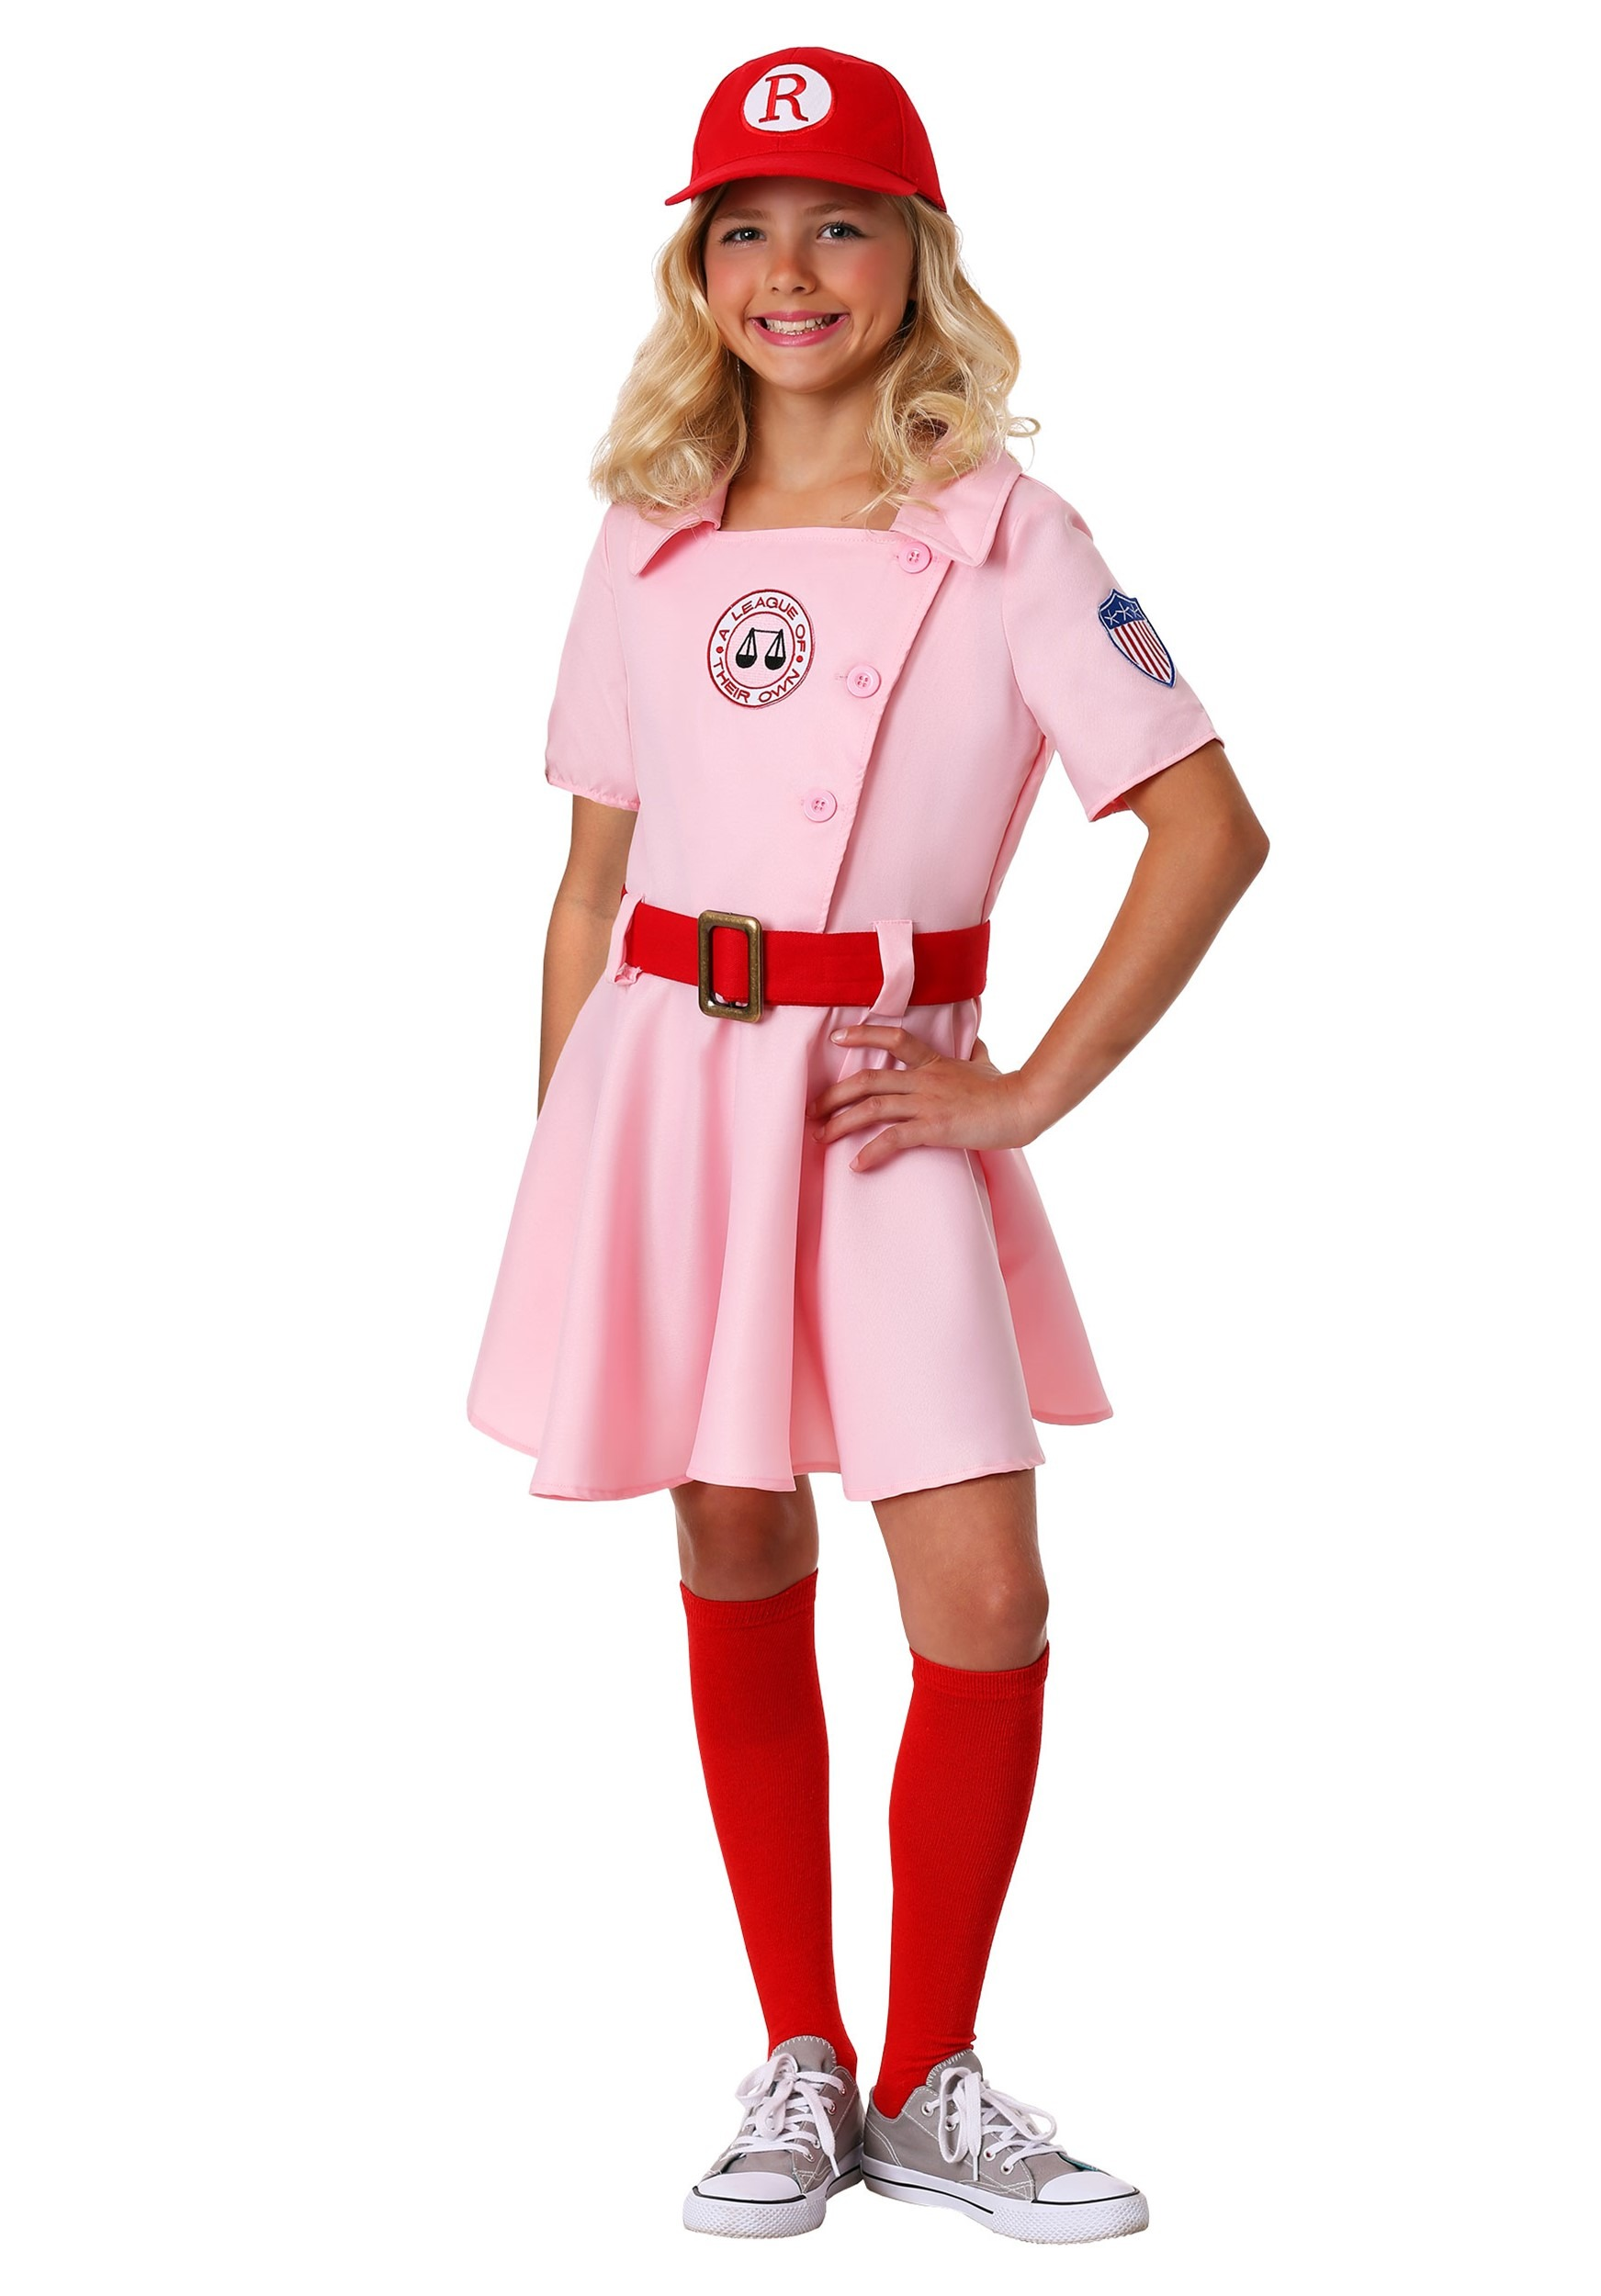 Girls Dottie Costume from A League of Their Own